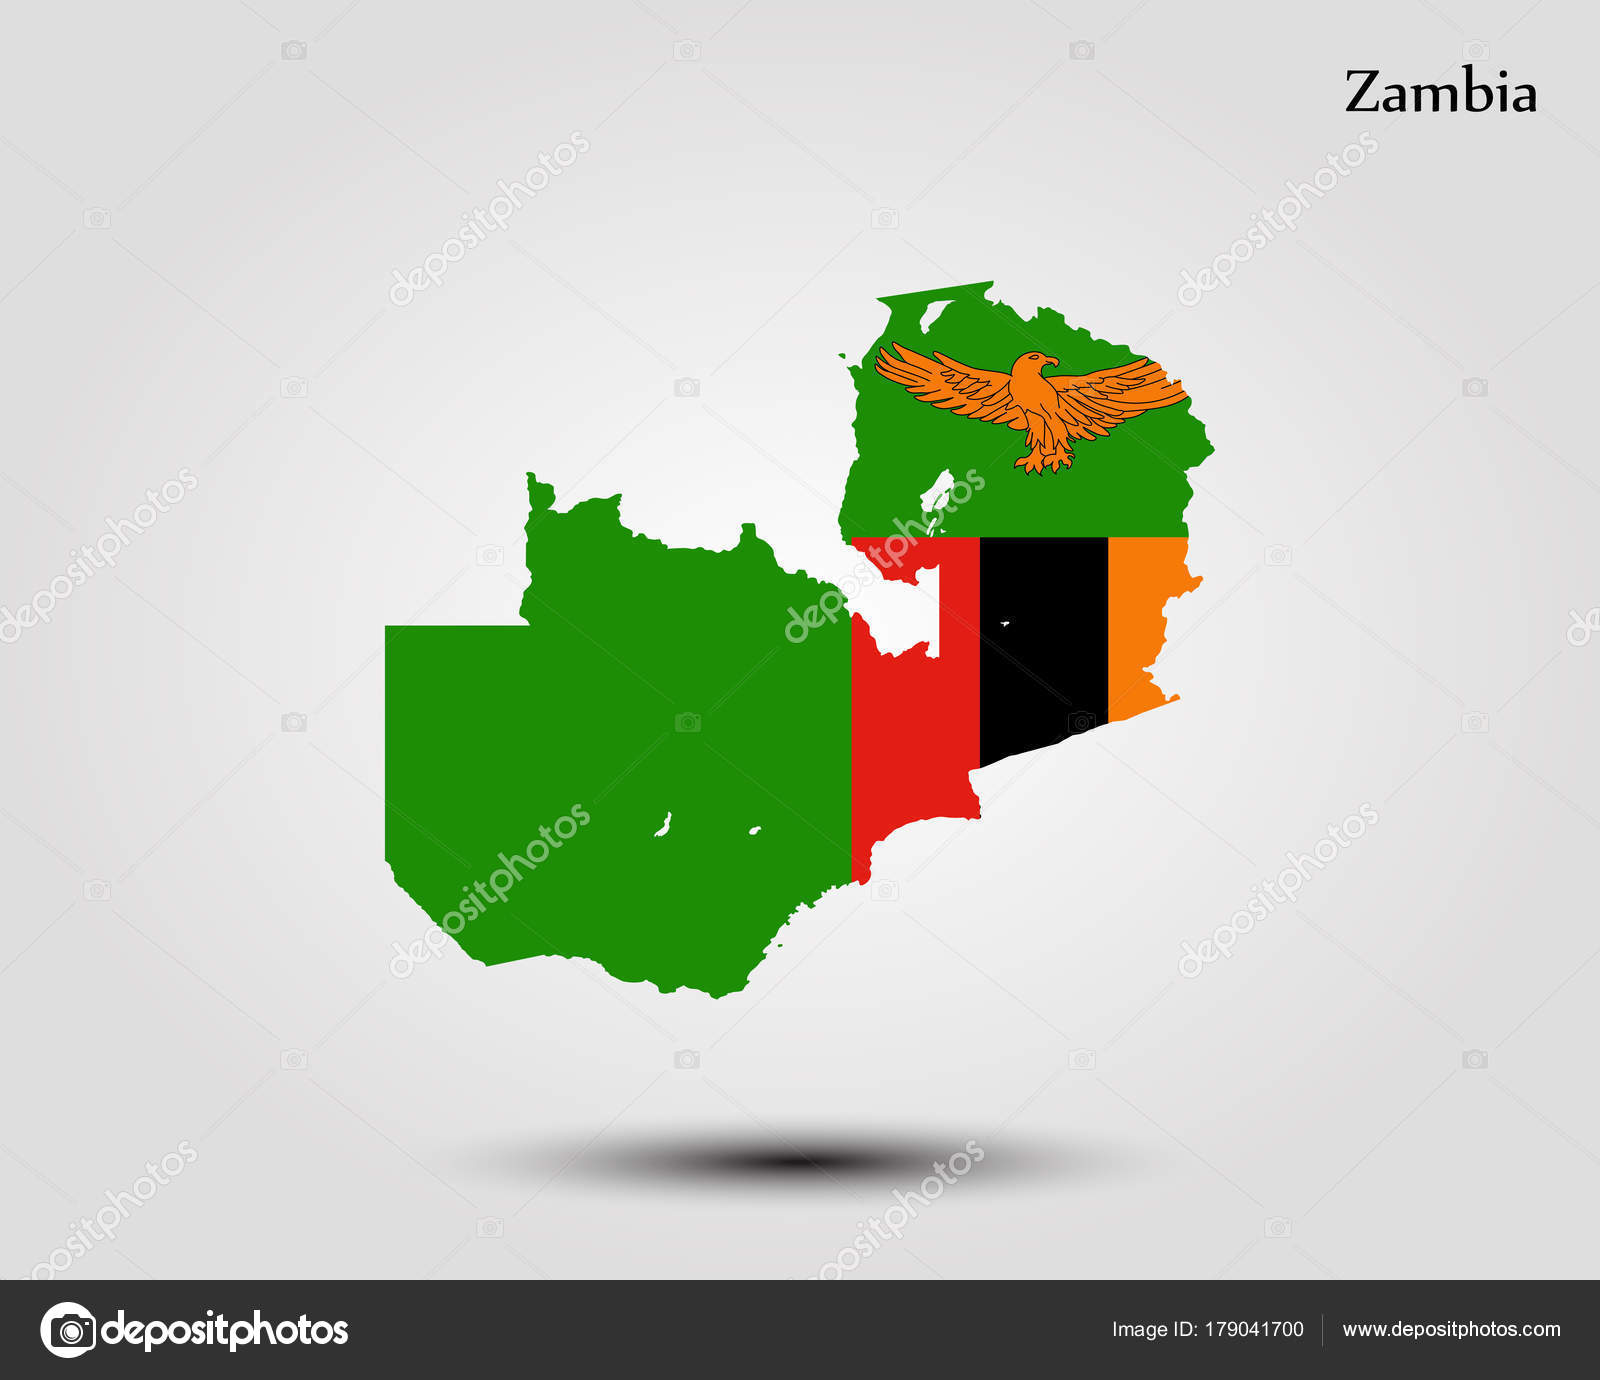 Map of zambia stock vector uglegorets 179041700 map of zambia vector illustration world map vector by uglegorets gumiabroncs Gallery